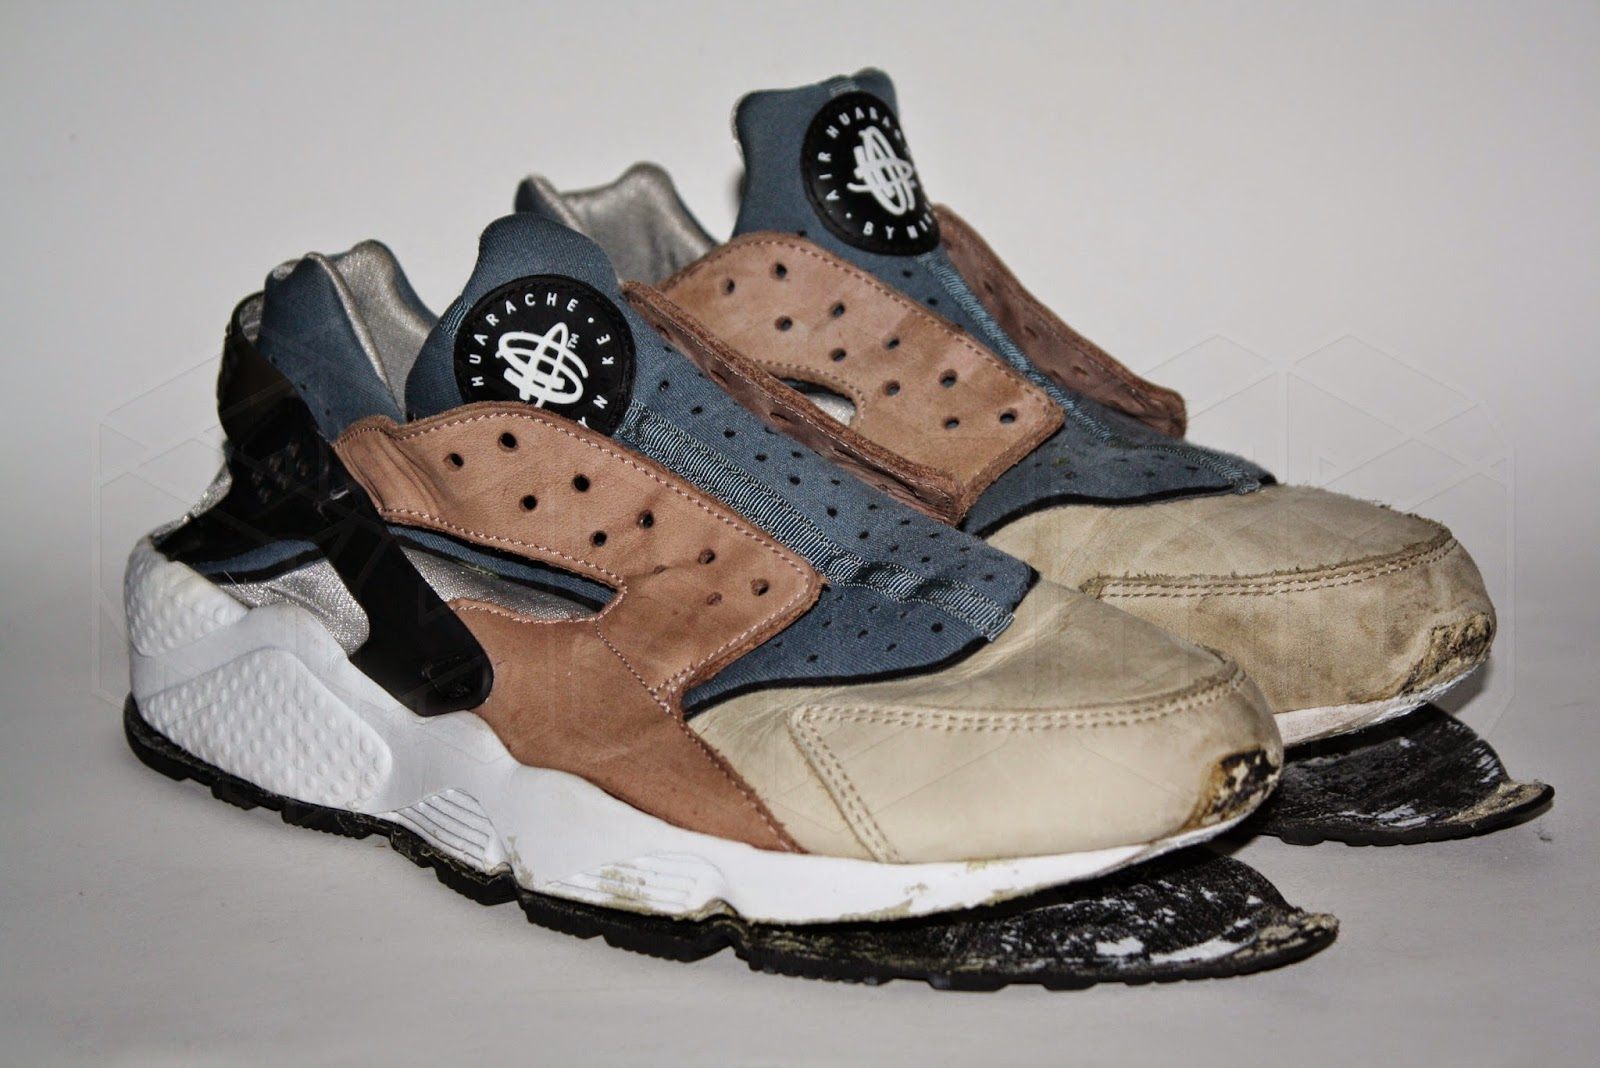 95f7721f7130 ... Nike Air Huarache Escape. Excess Glue Removal Clean and Rebuild. ...